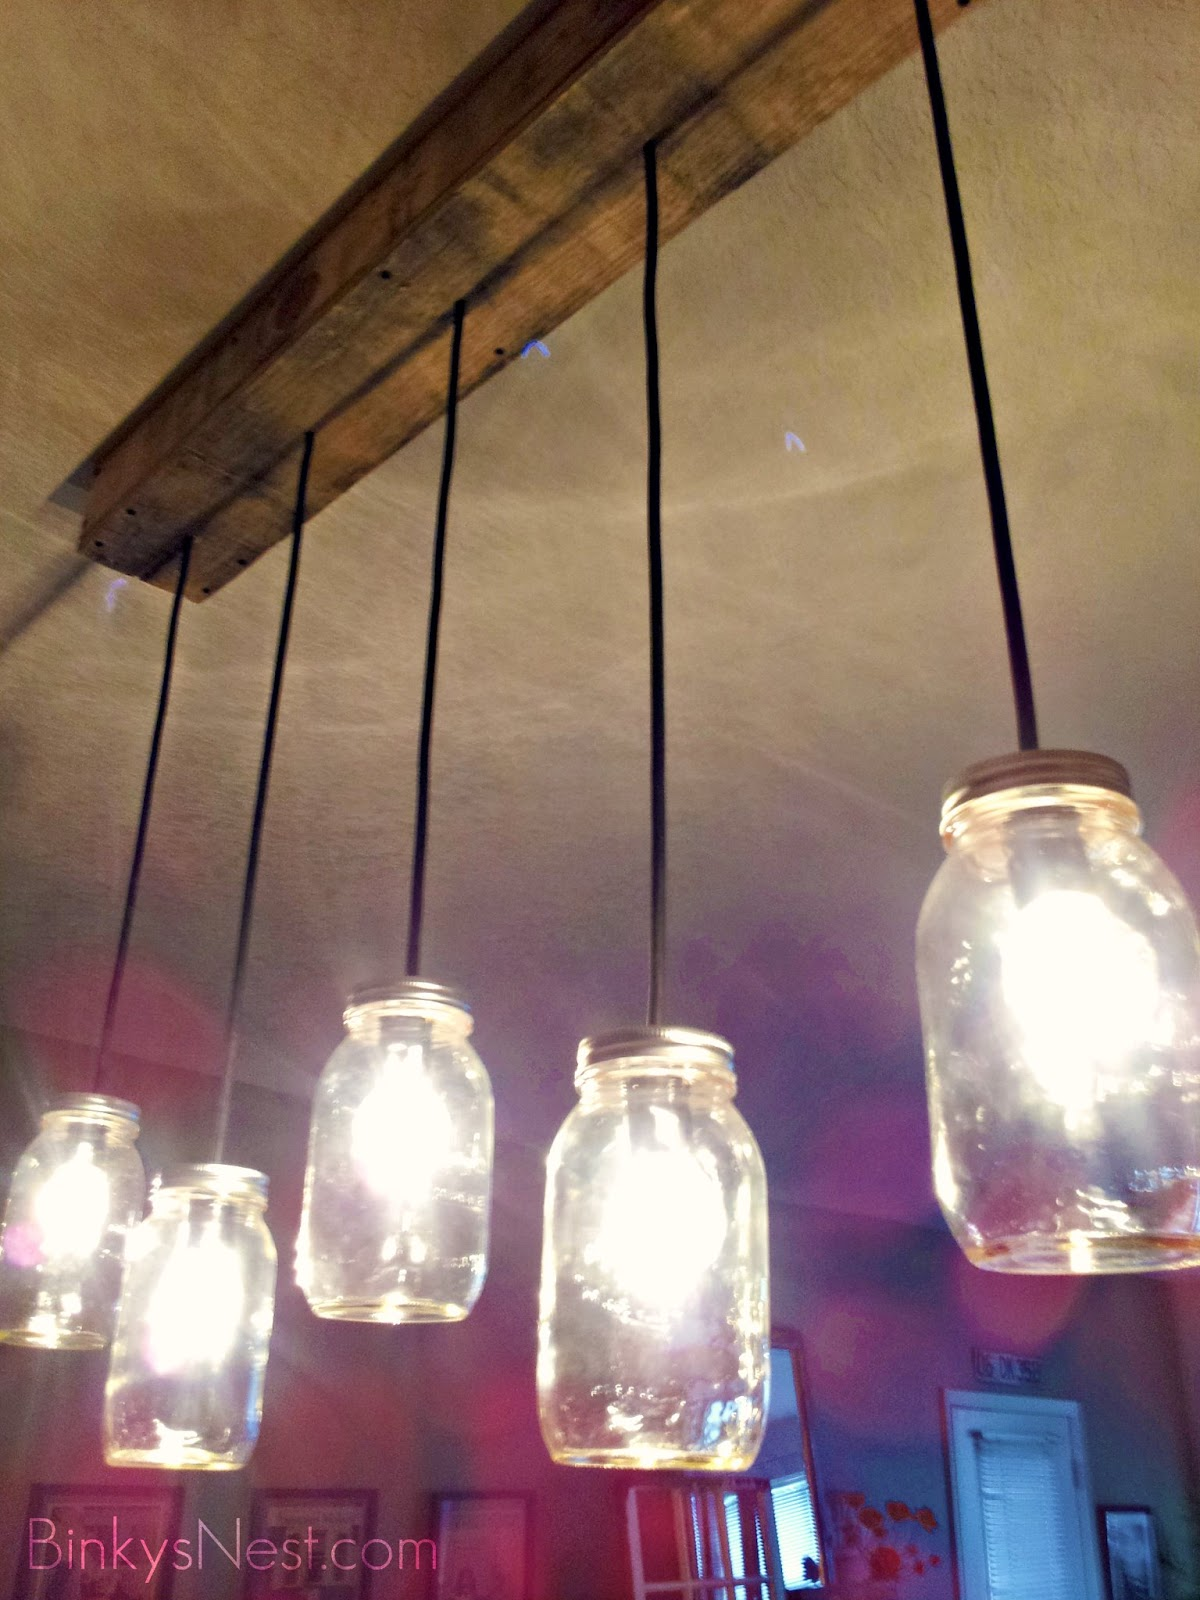 Twenty8divine mason jar rustic pallet light fixture diy mason jar rustic pallet light fixture diy on binkysnest aloadofball Images